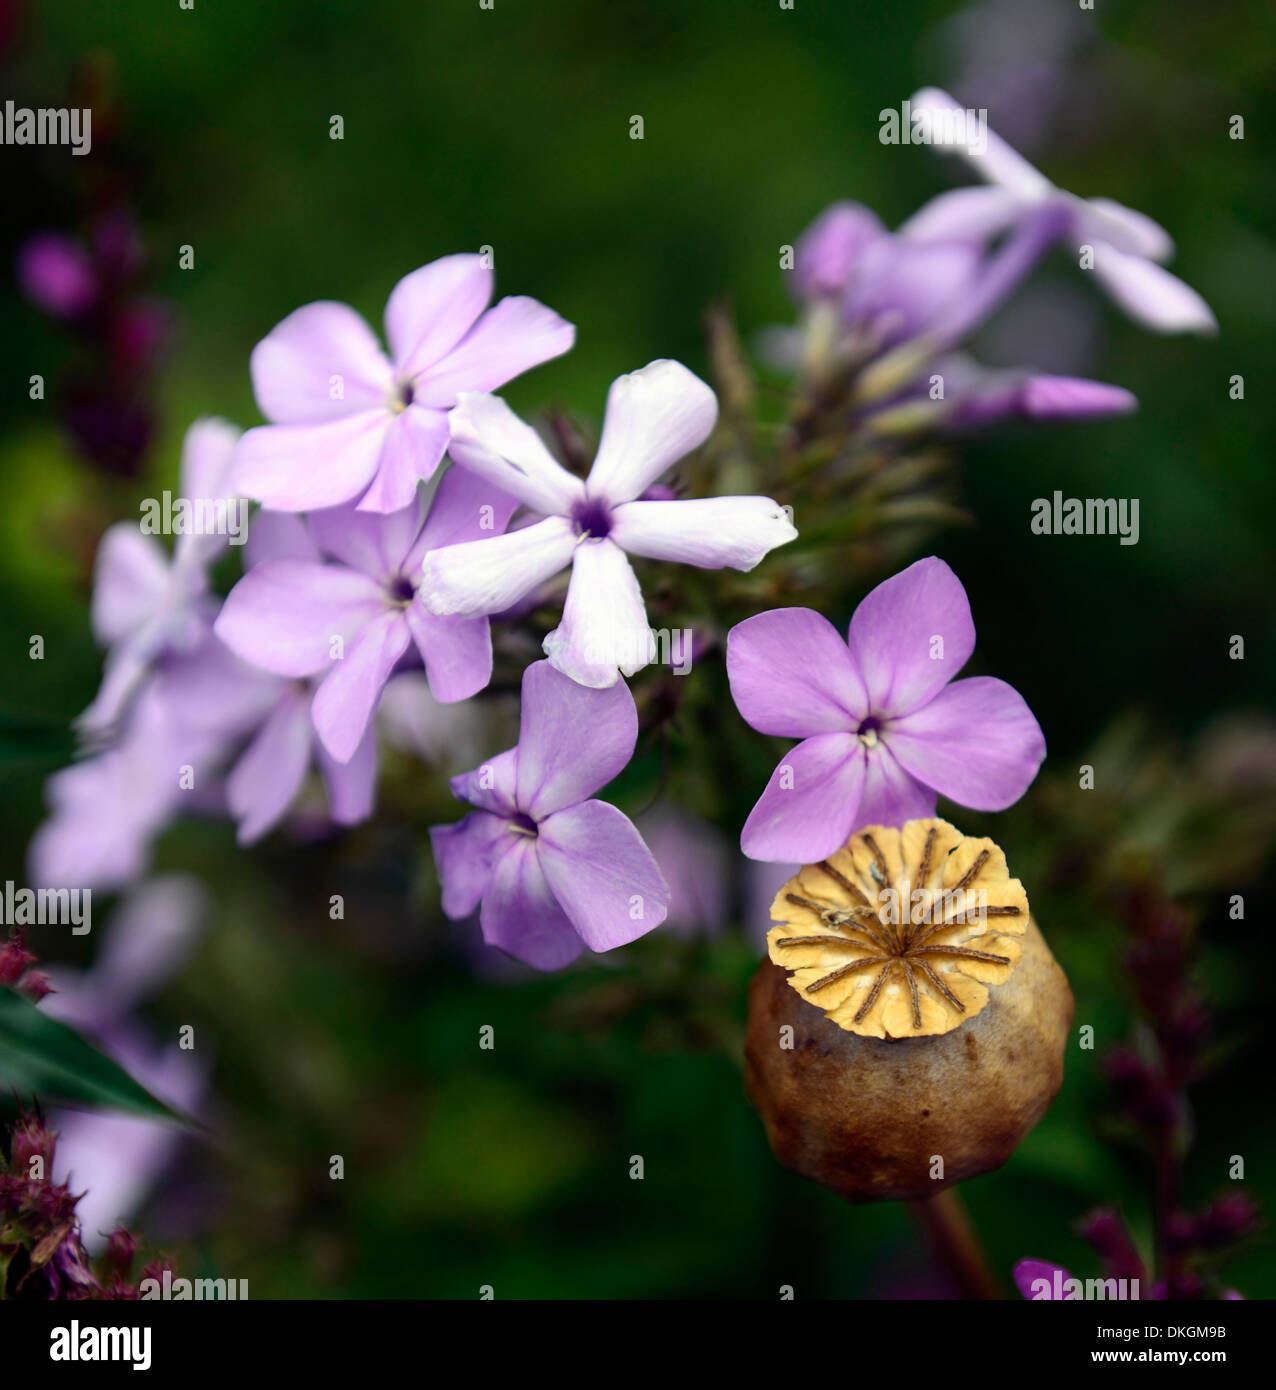 pink white phlox fowers poppy seedhead contrast contrasting - Stock Image